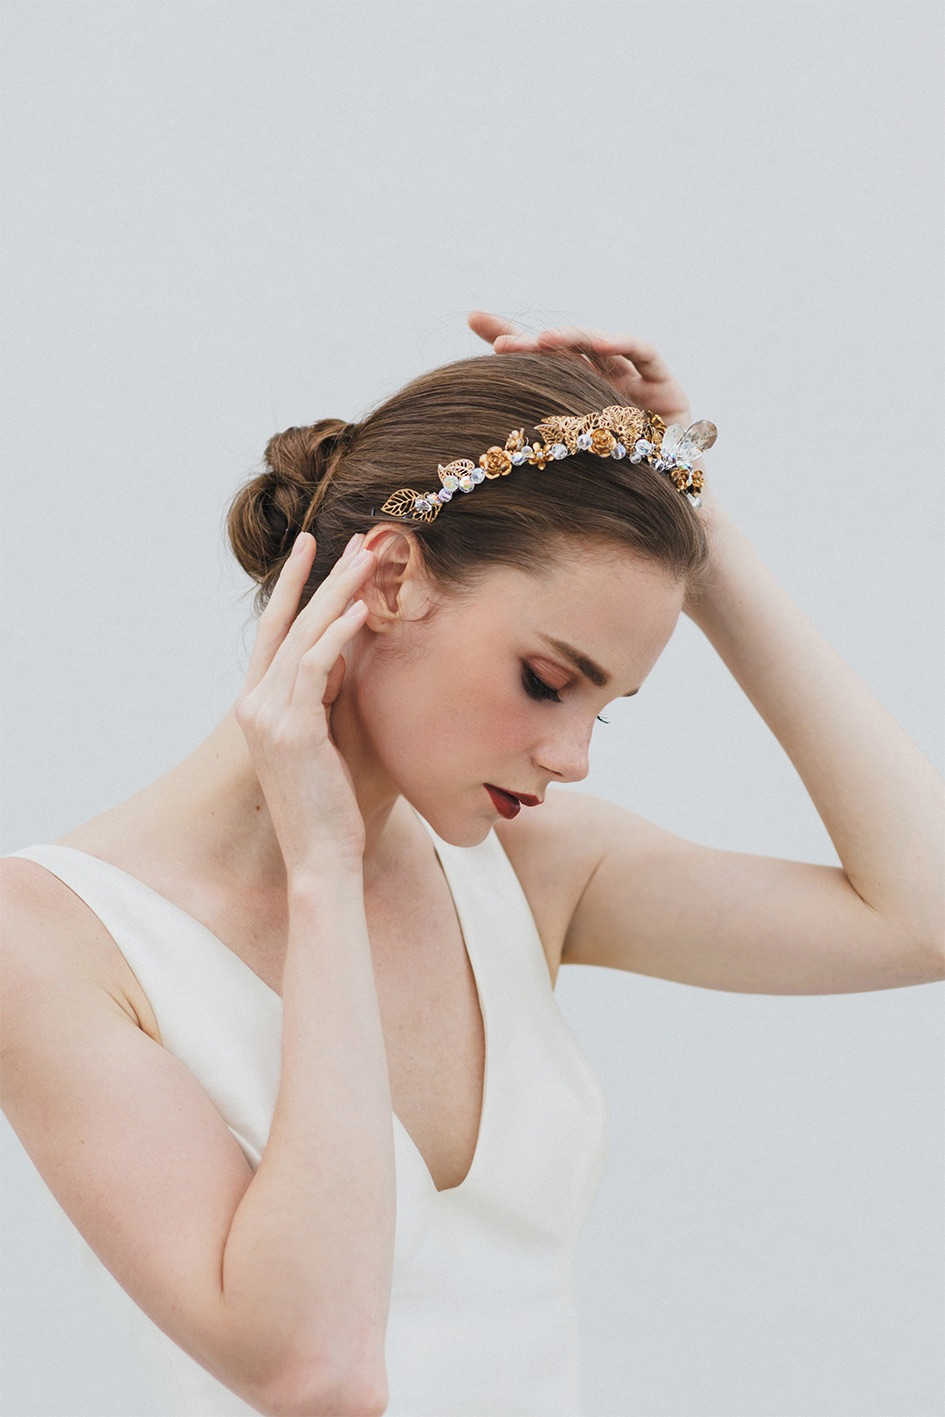 Hair and Makeup done by Autelier Makeup